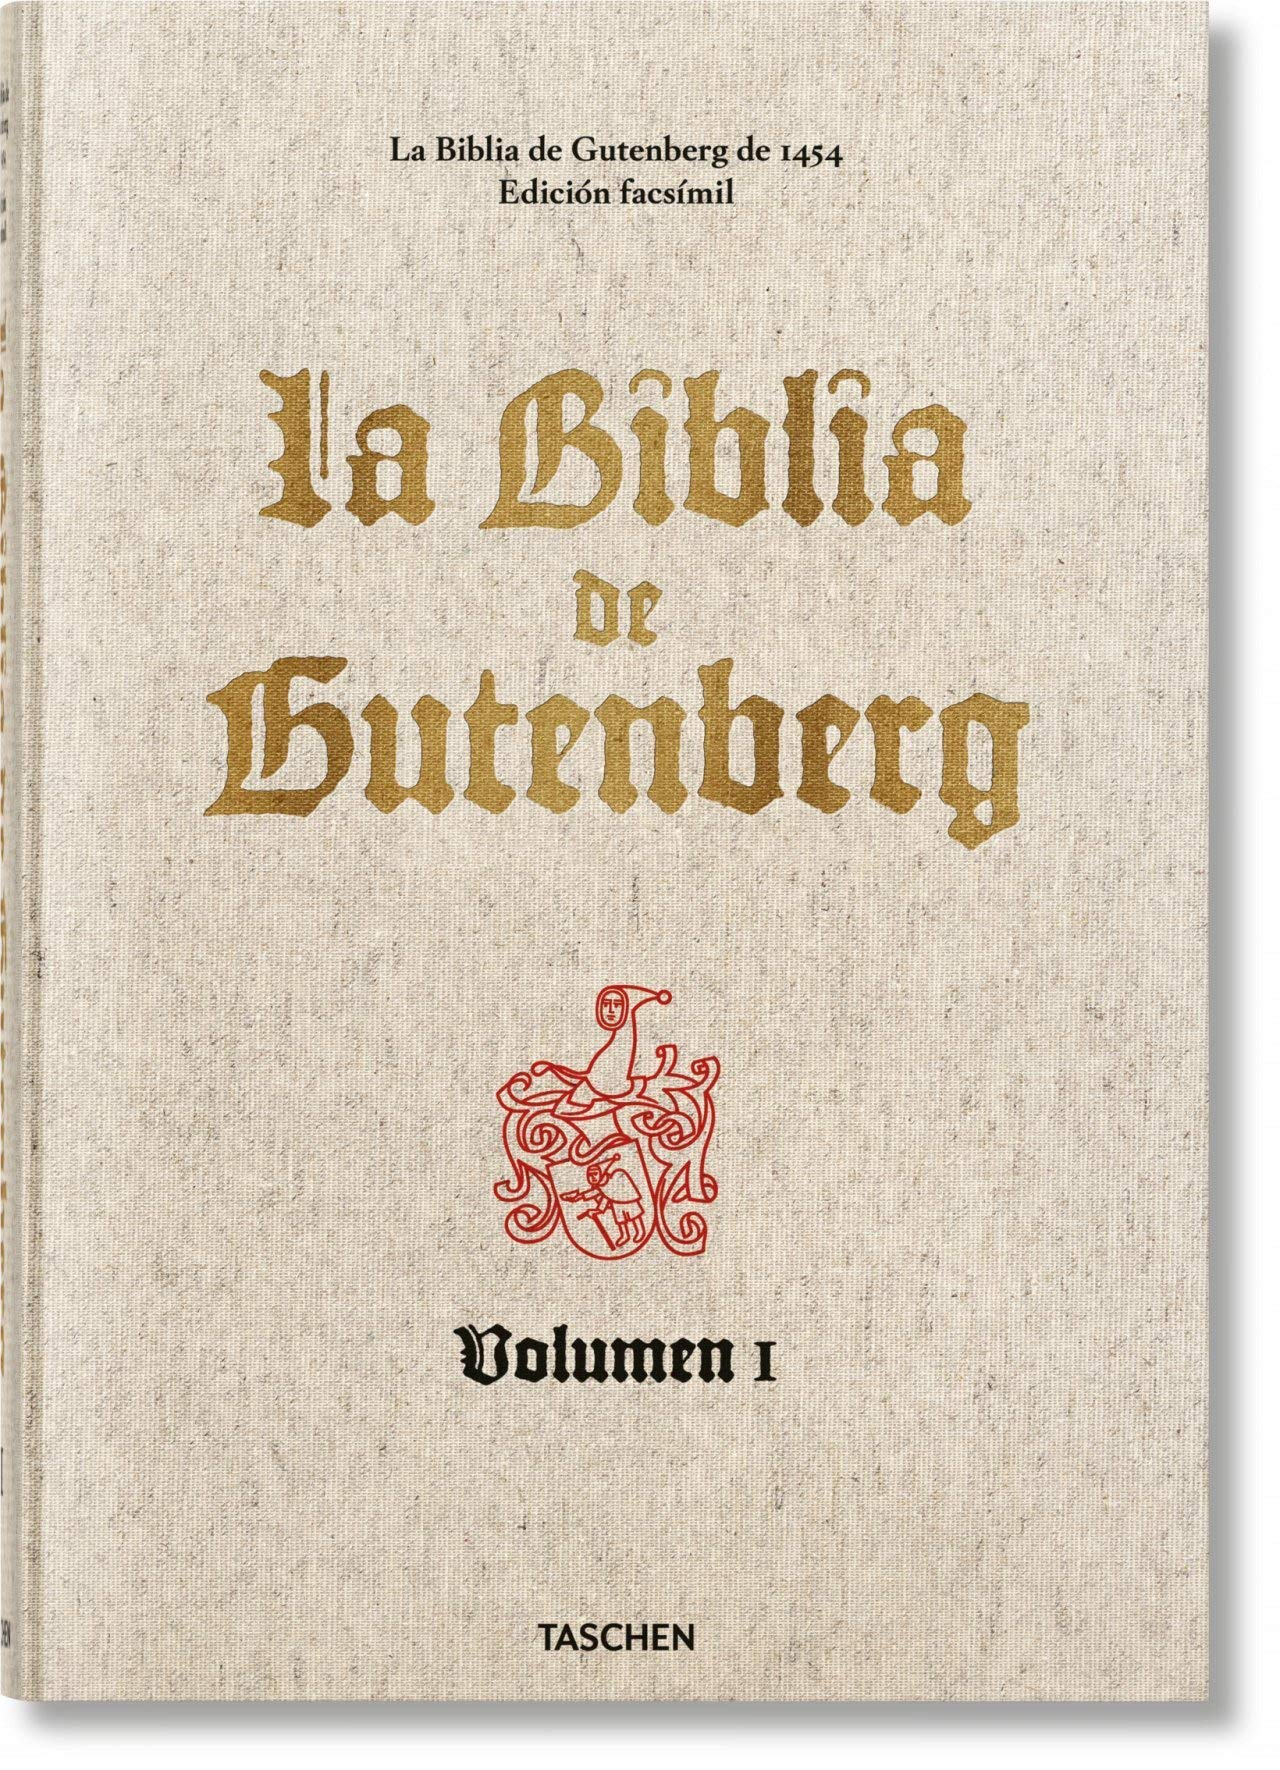 The Gutenberg Bible of 1454